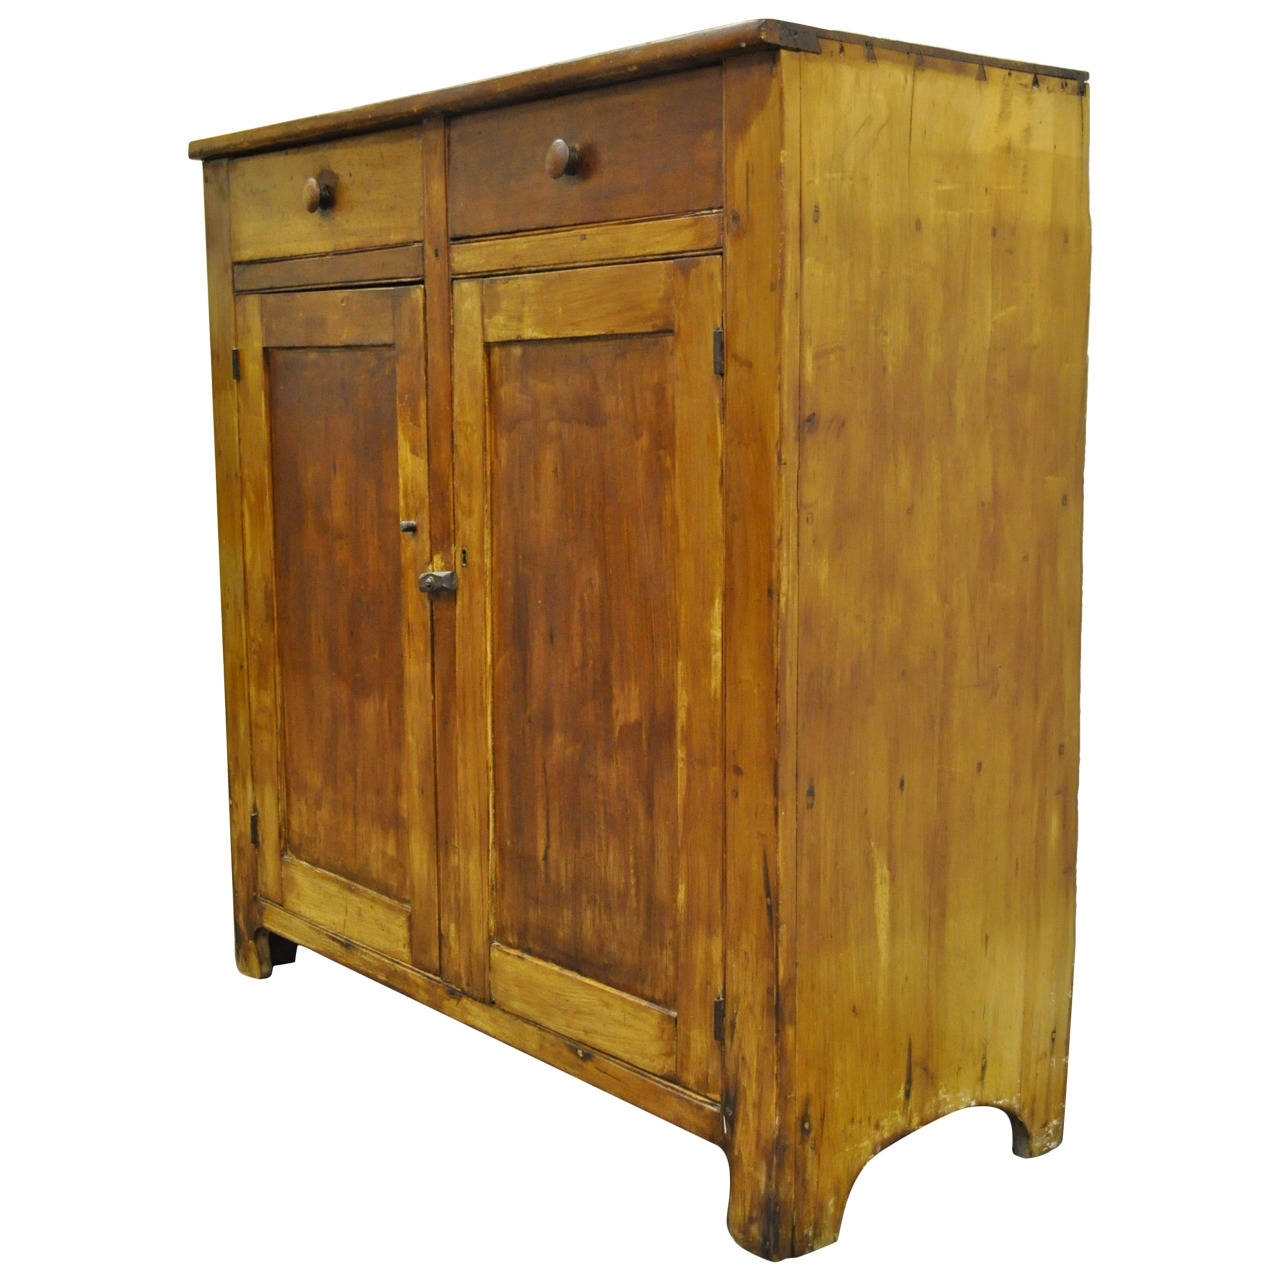 American Antique Scrubbed Pine Jelly Cupboard Cabinet, Pennsylvania Within Current Iron Pine Sideboards (#2 of 20)